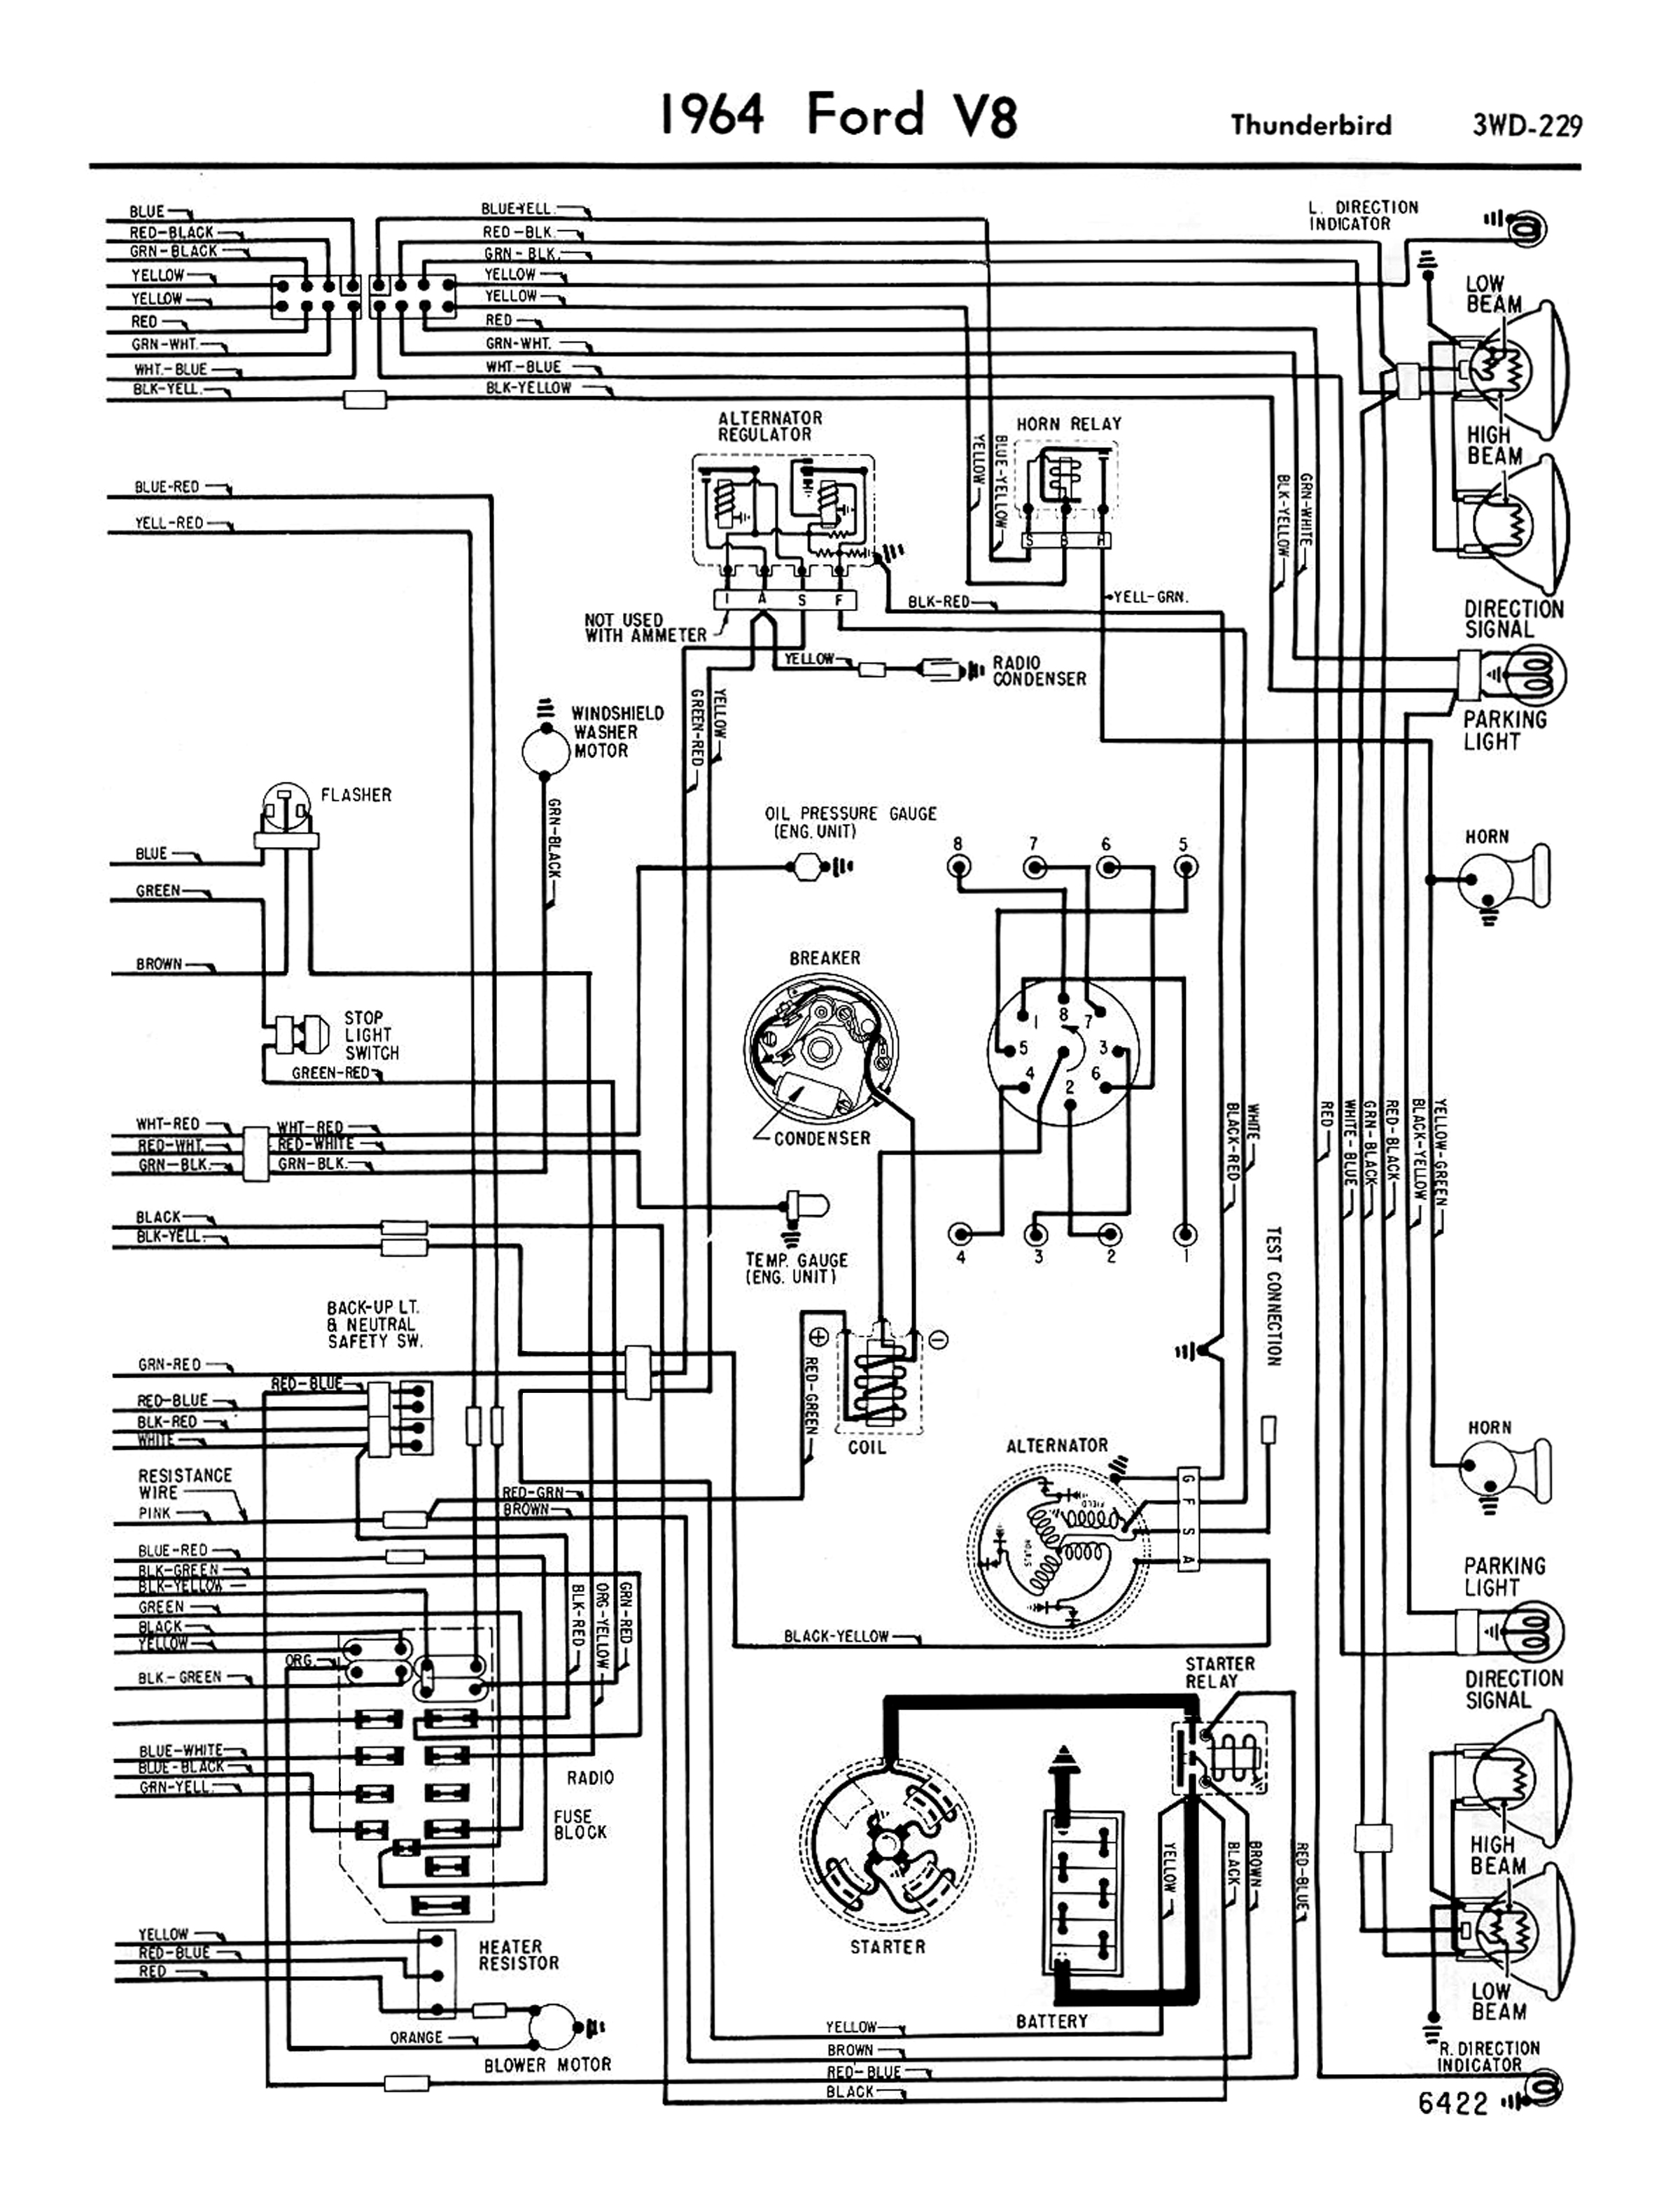 Wiring Diagram 65 Wks Schema Img Ford Diagrams Automotive Ac Thunderbird 1964